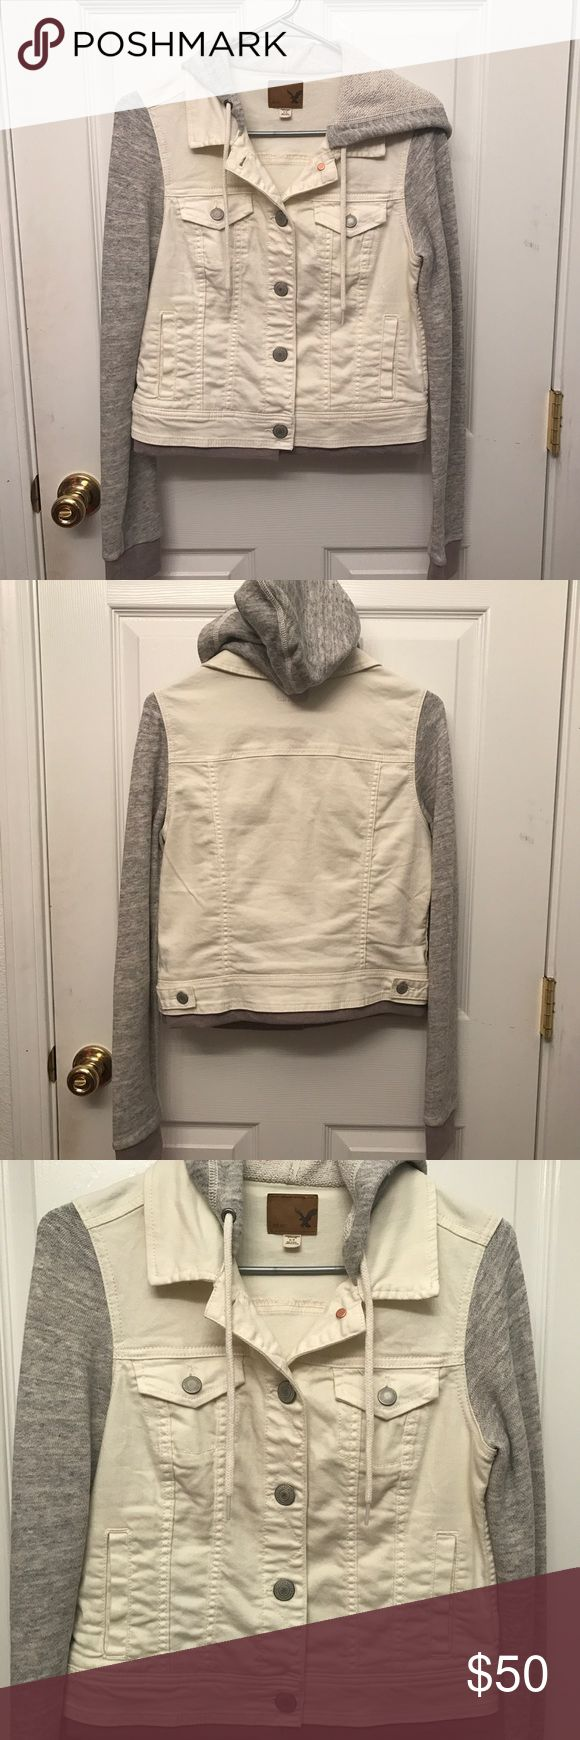 American Eagle white denim jacket American Eagle Outfitters white denim jacket. Only worn once has pockets on the outside and on the inside. The sleeves are sweater-like material and has a hoodie. No tips or stains. American Eagle Outfitters Jackets & Coats Jean Jackets